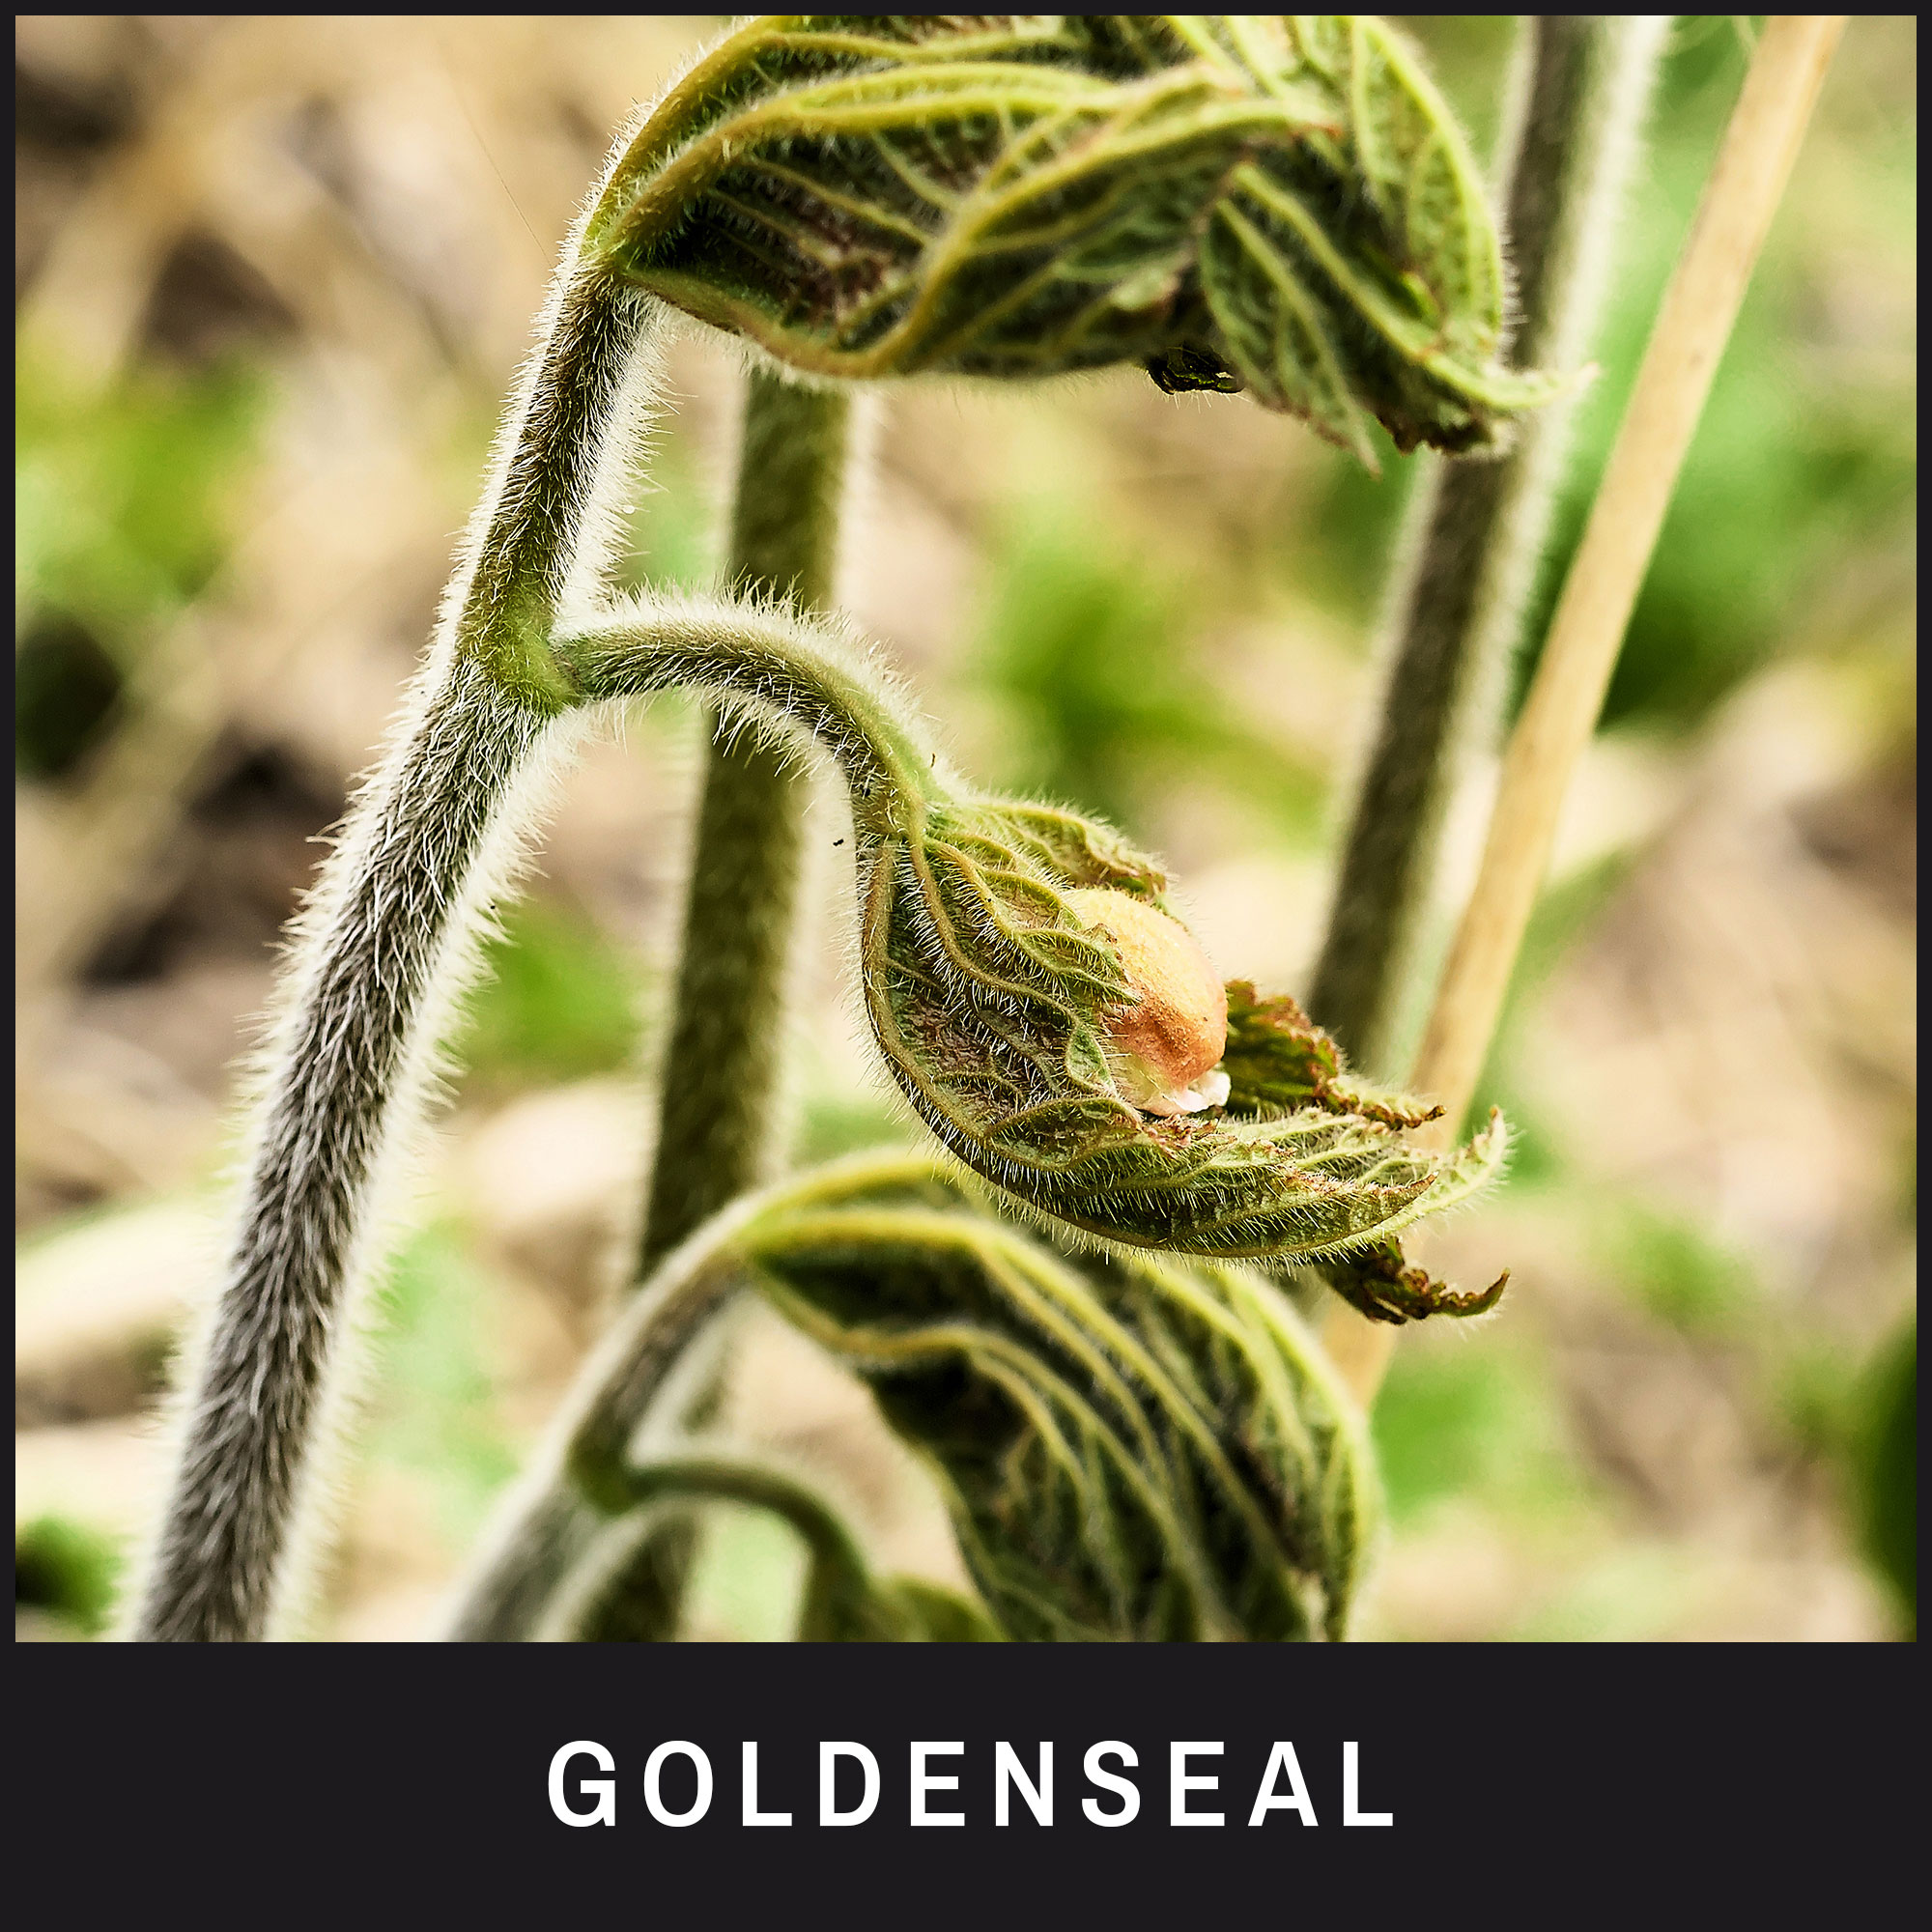 Goldenseal – also known as 'eye balm'